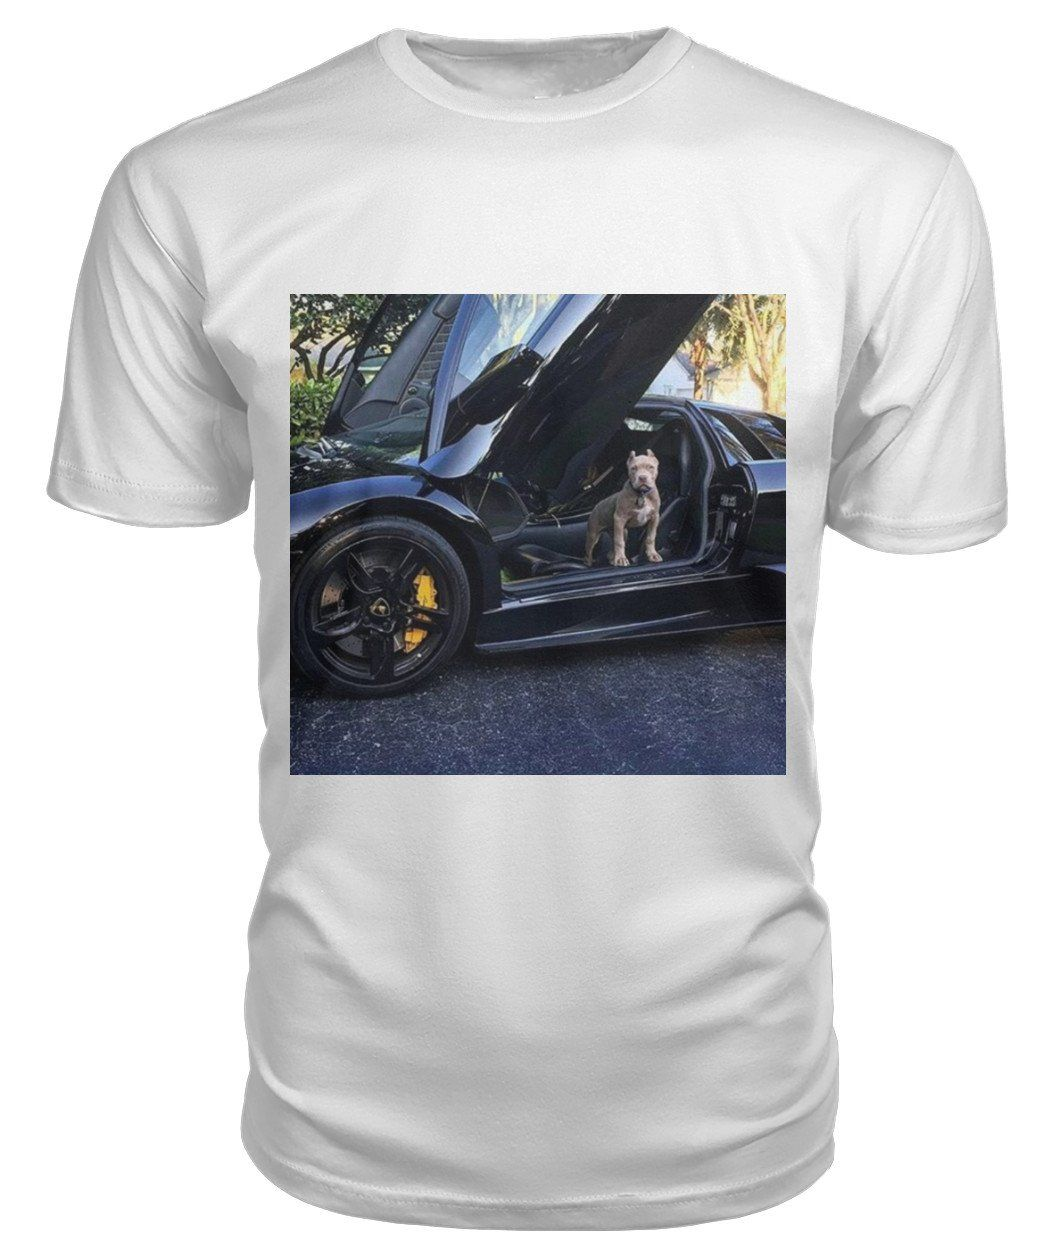 light grey carstyle aventador shirt heathered lamborghini t skreened front image